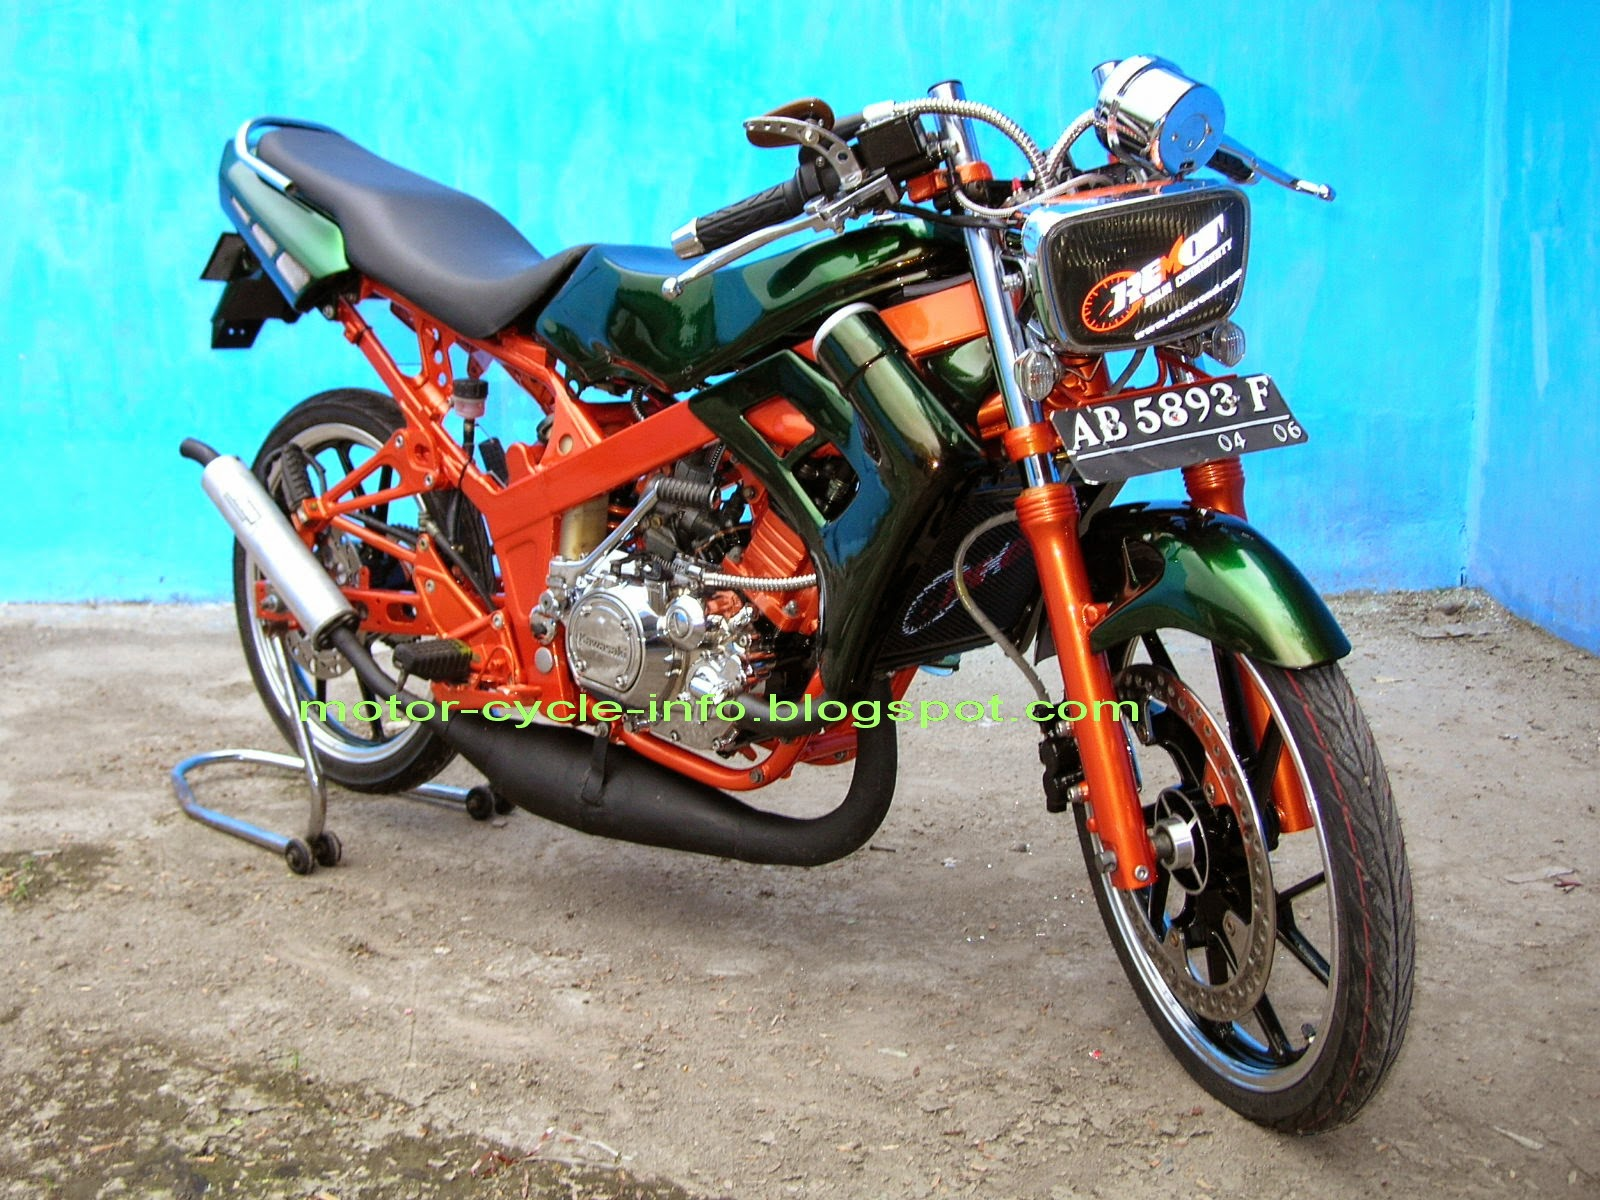 Kawasaki D Tracker Modifikasi Supermoto Kawasaki Klx 150 Modif Product